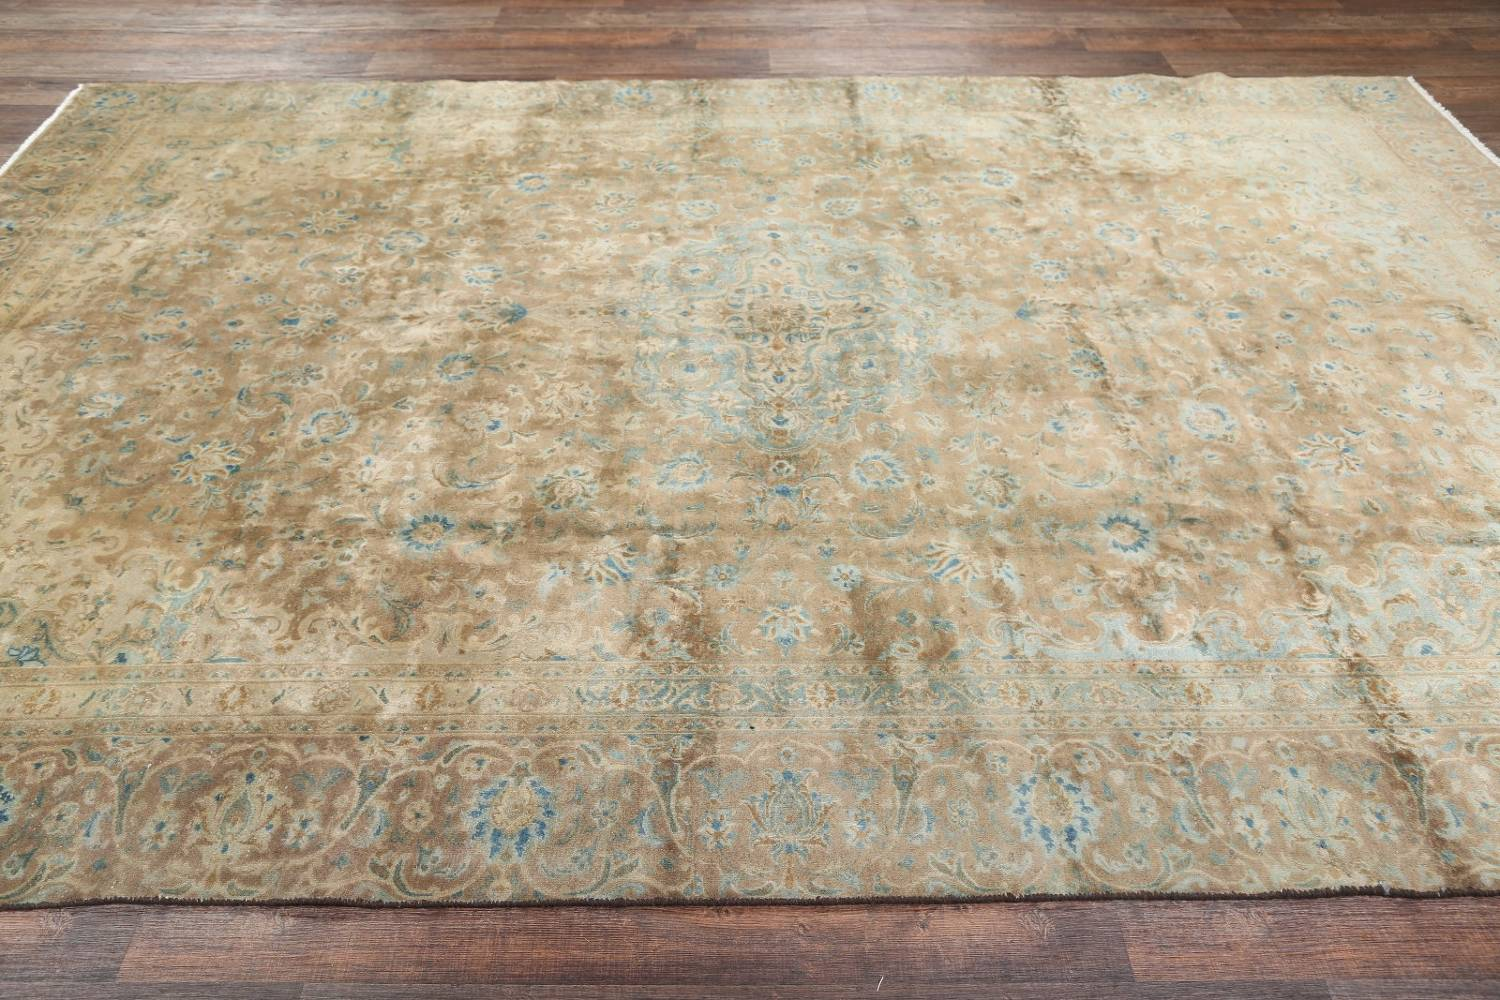 Antique Muted Distressed Kashan Persian Area Rug 9x13 image 20